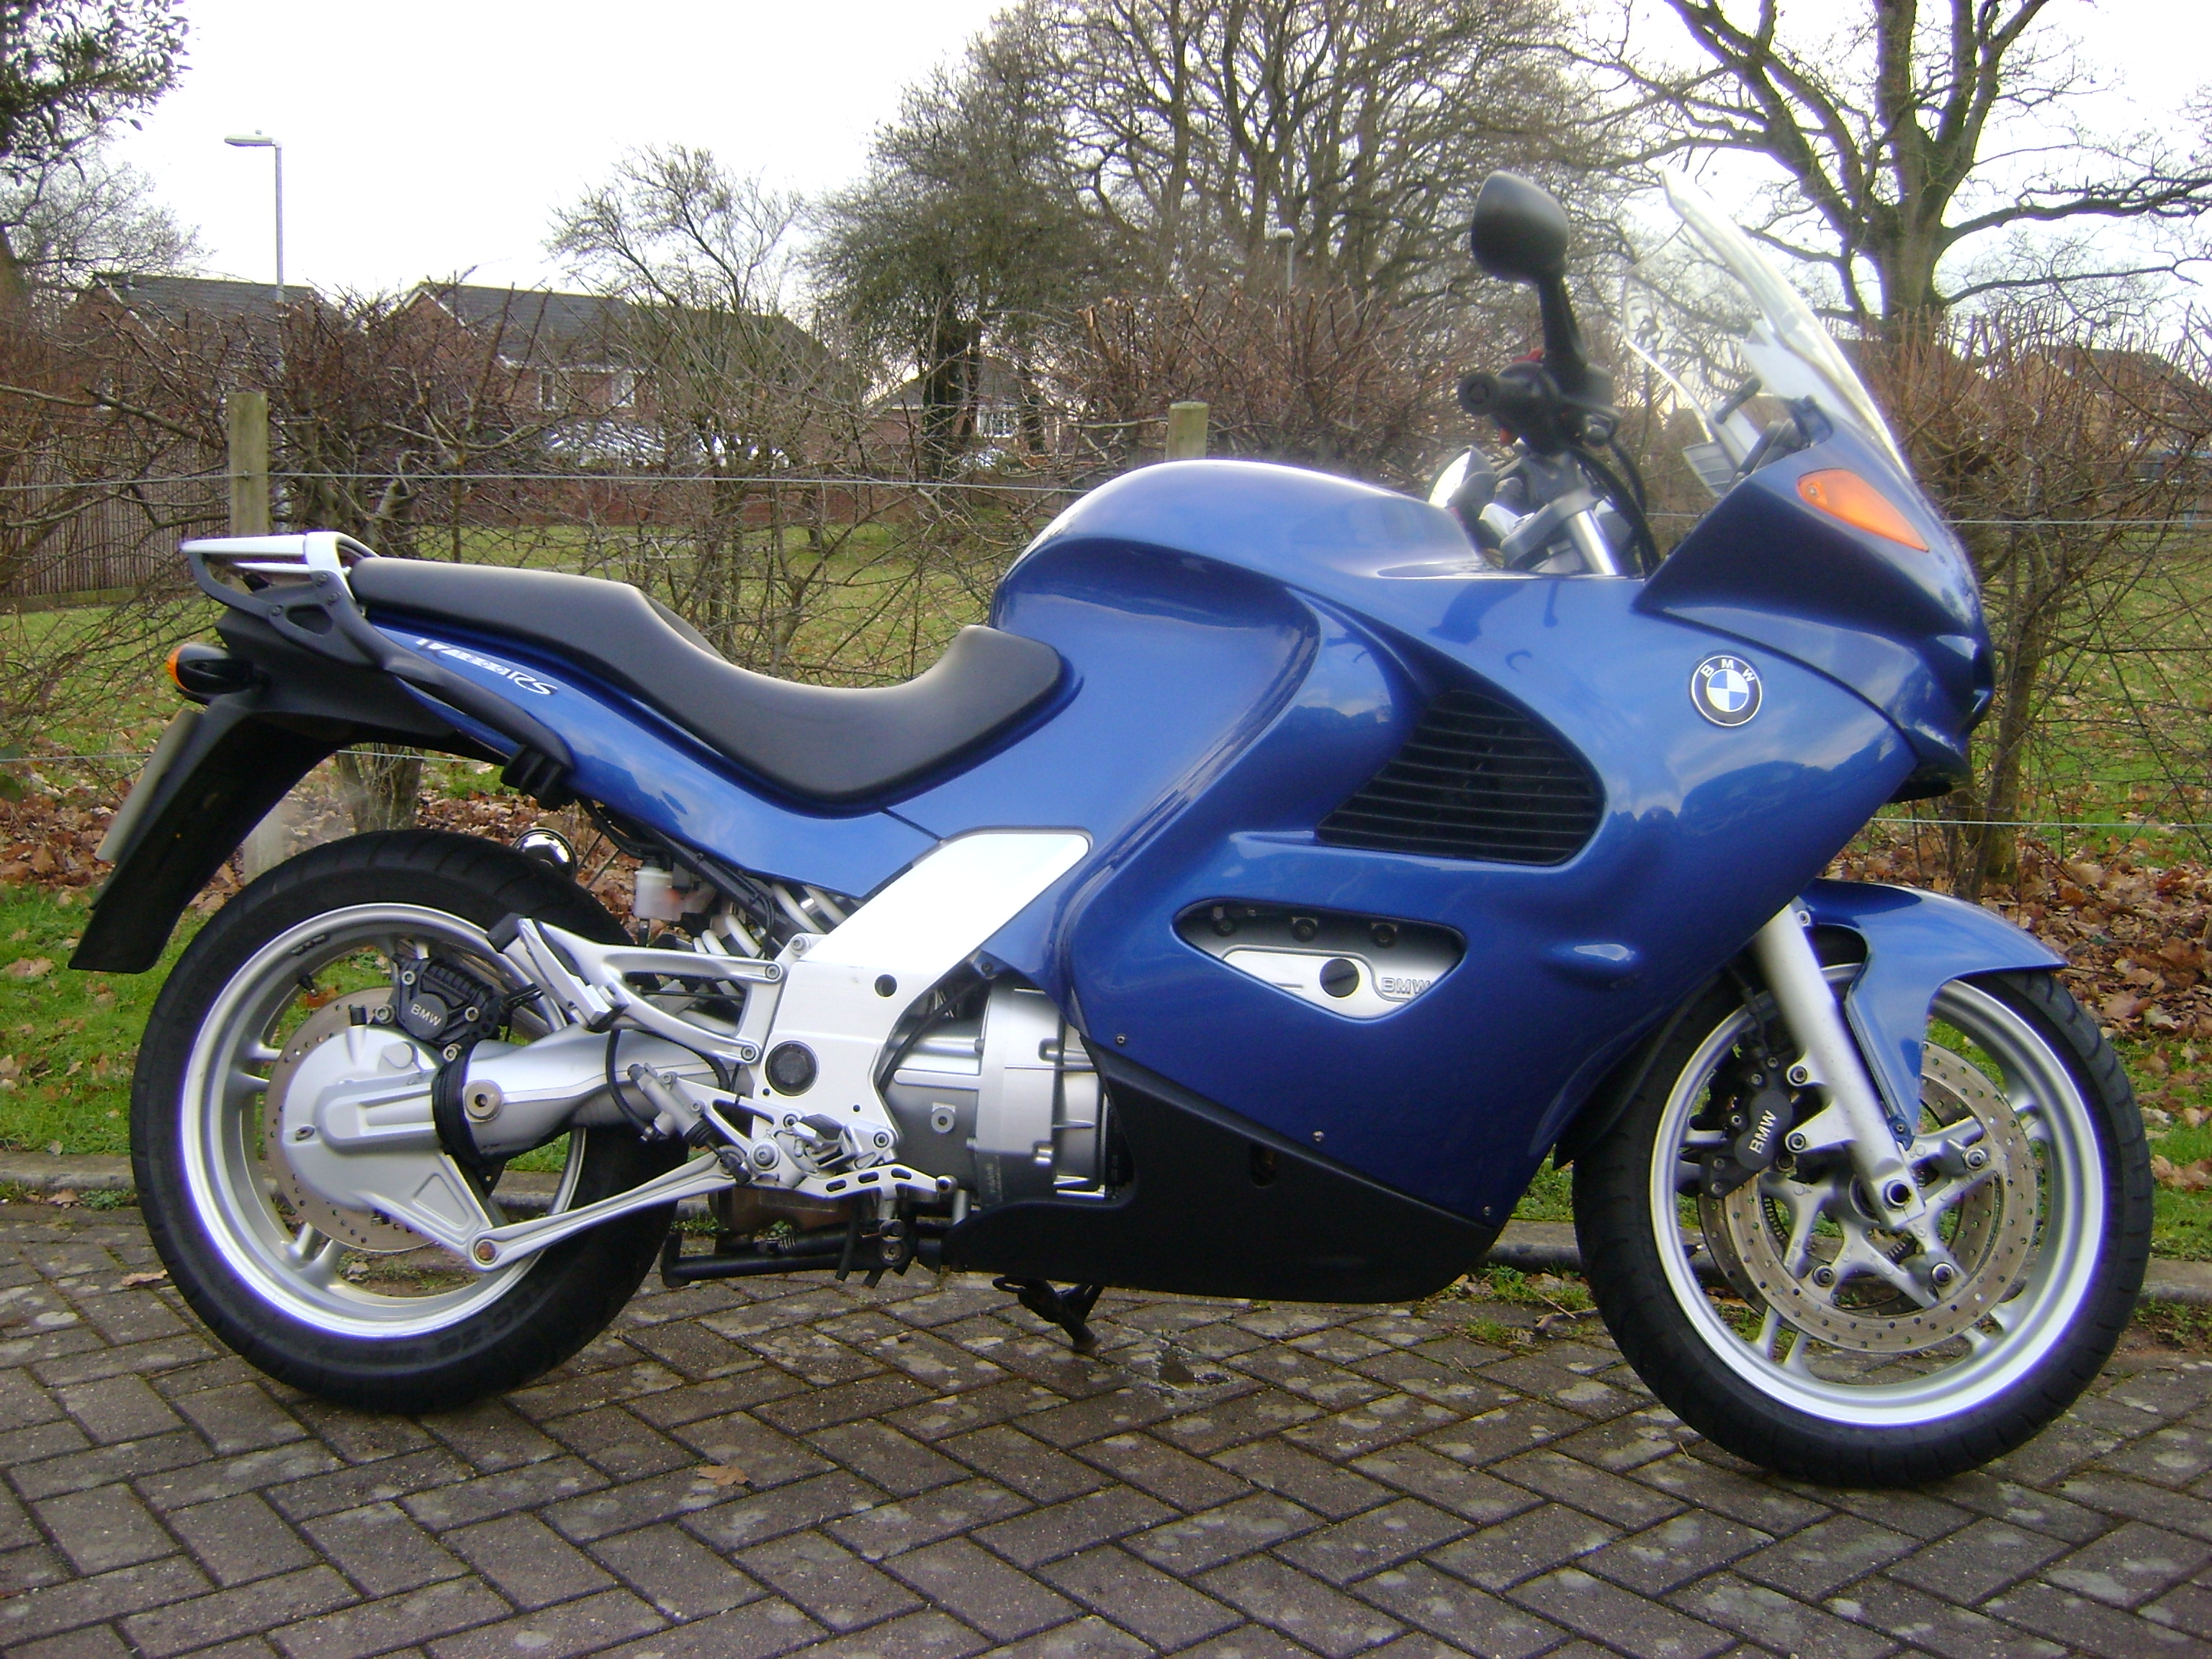 BMW K1200RS 1999 images #43967